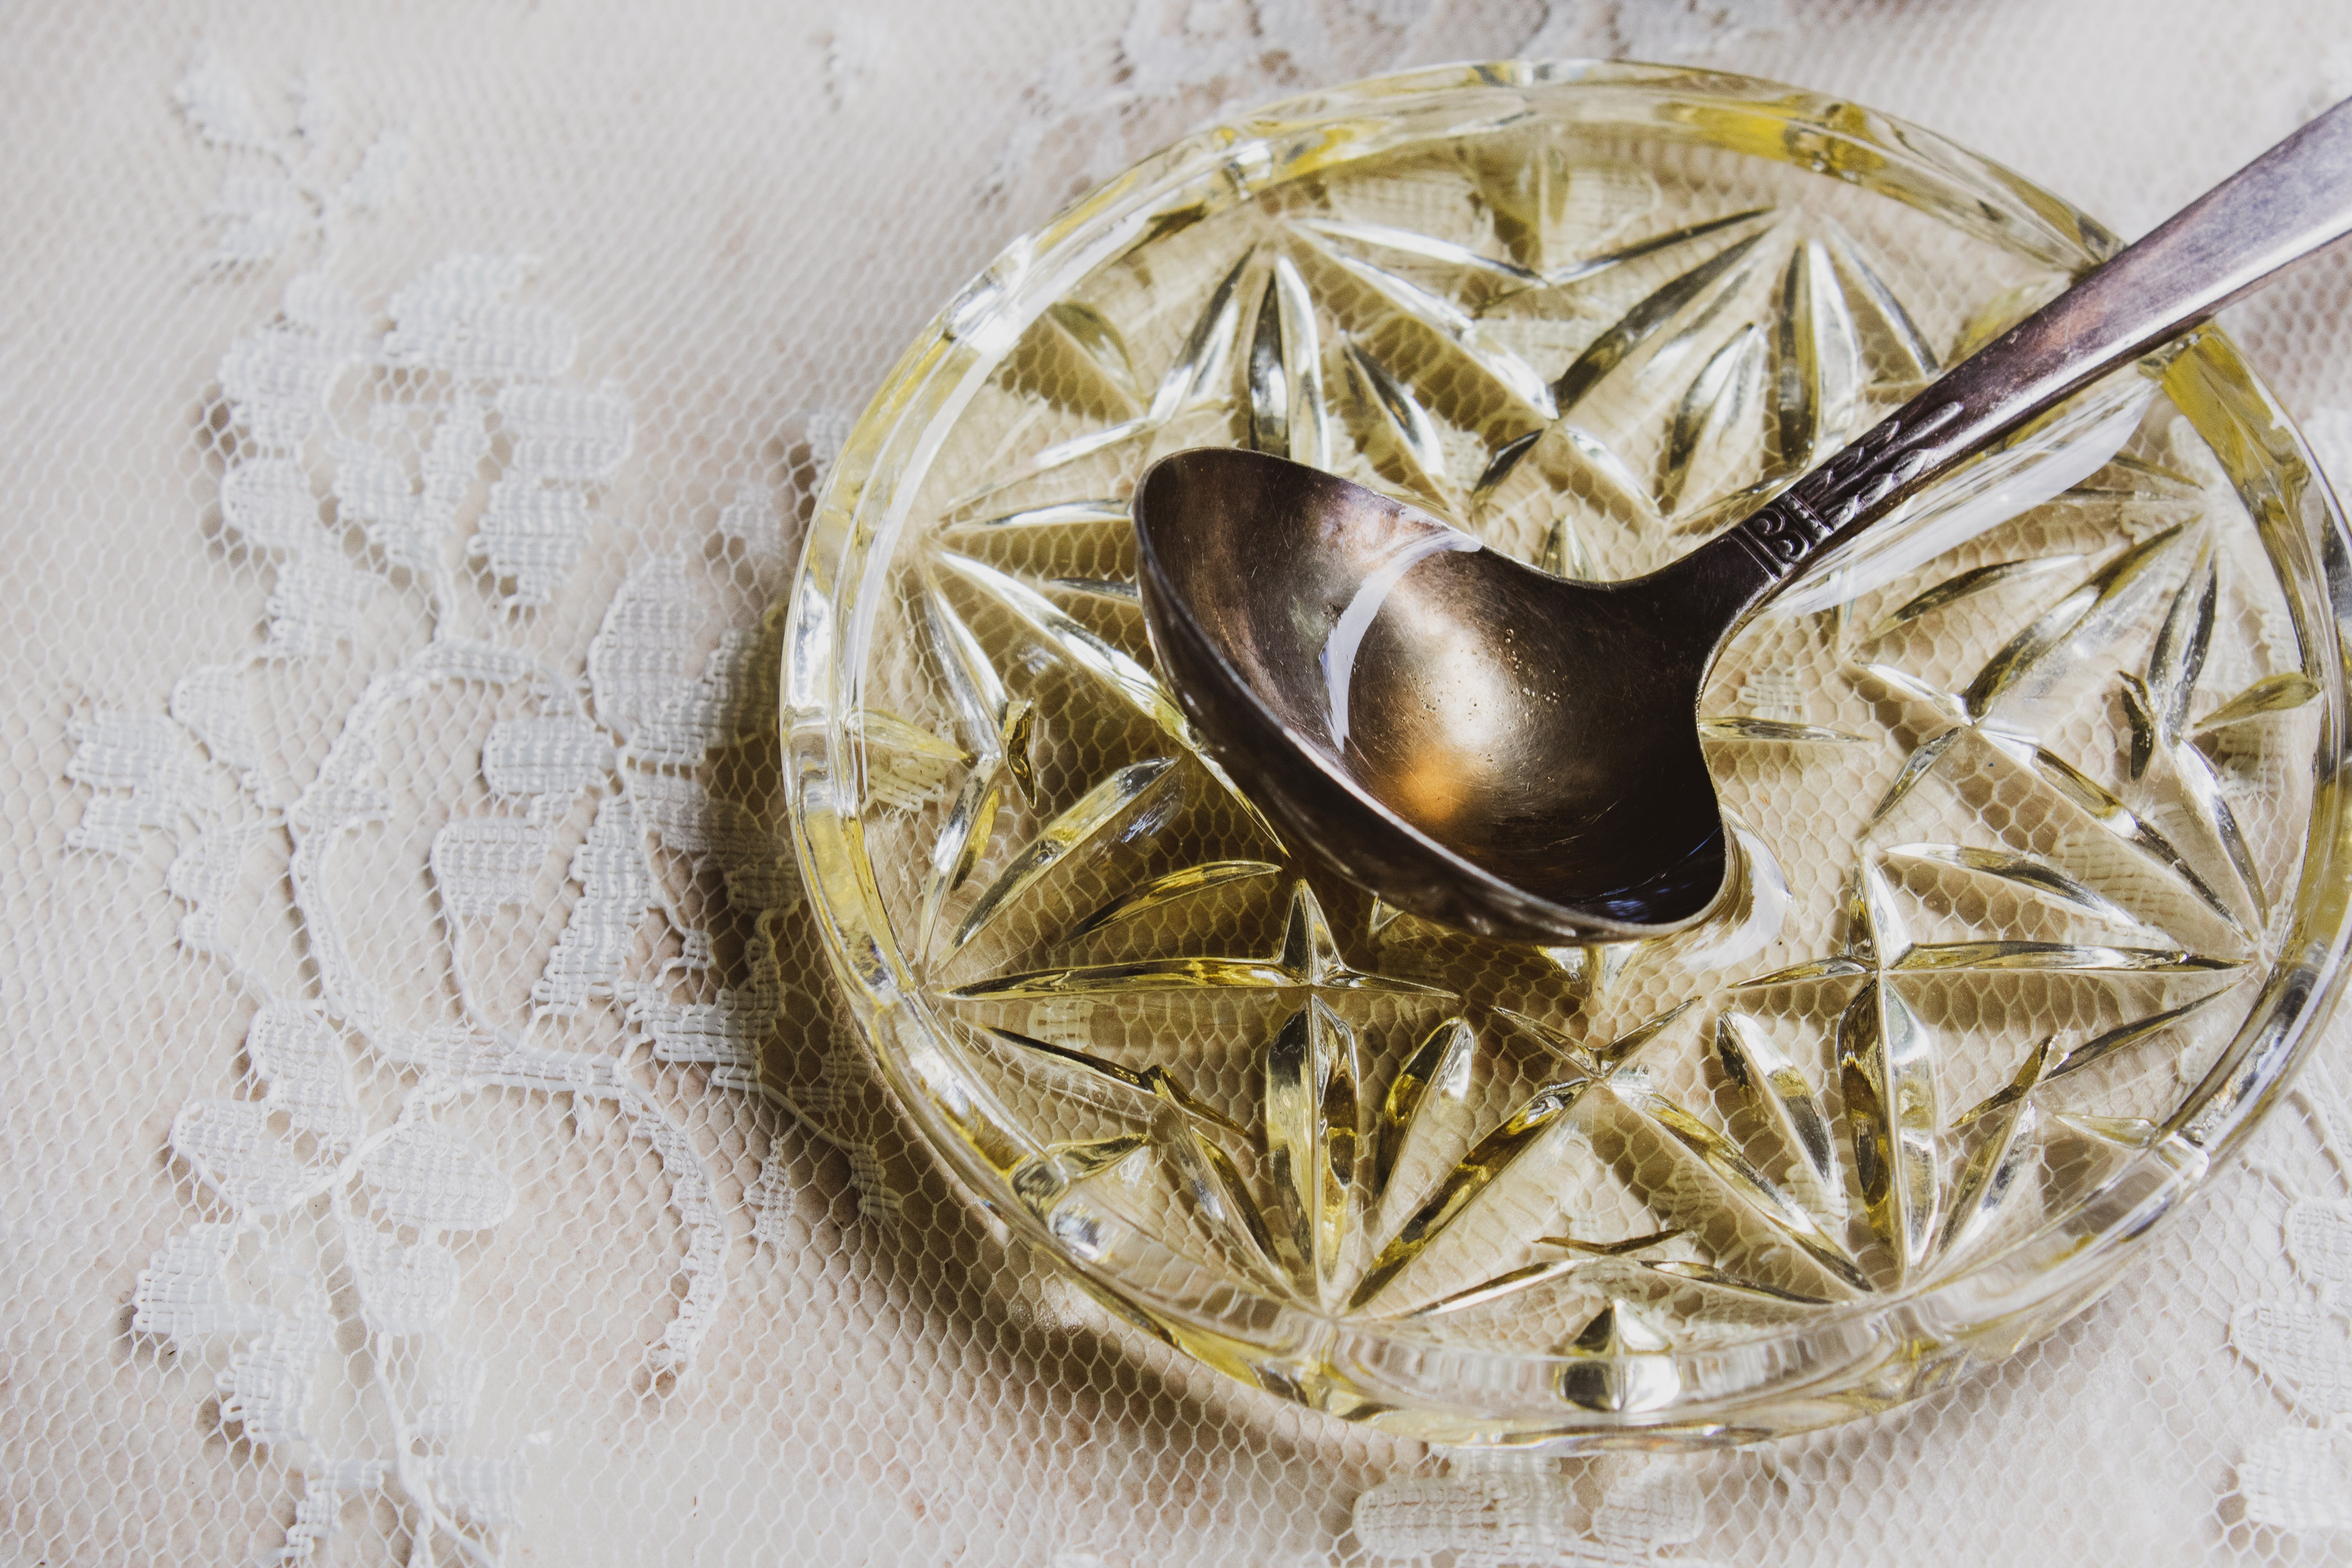 Spoon with argan oil resting on small crystal bowl with argan oil on top of lace counter